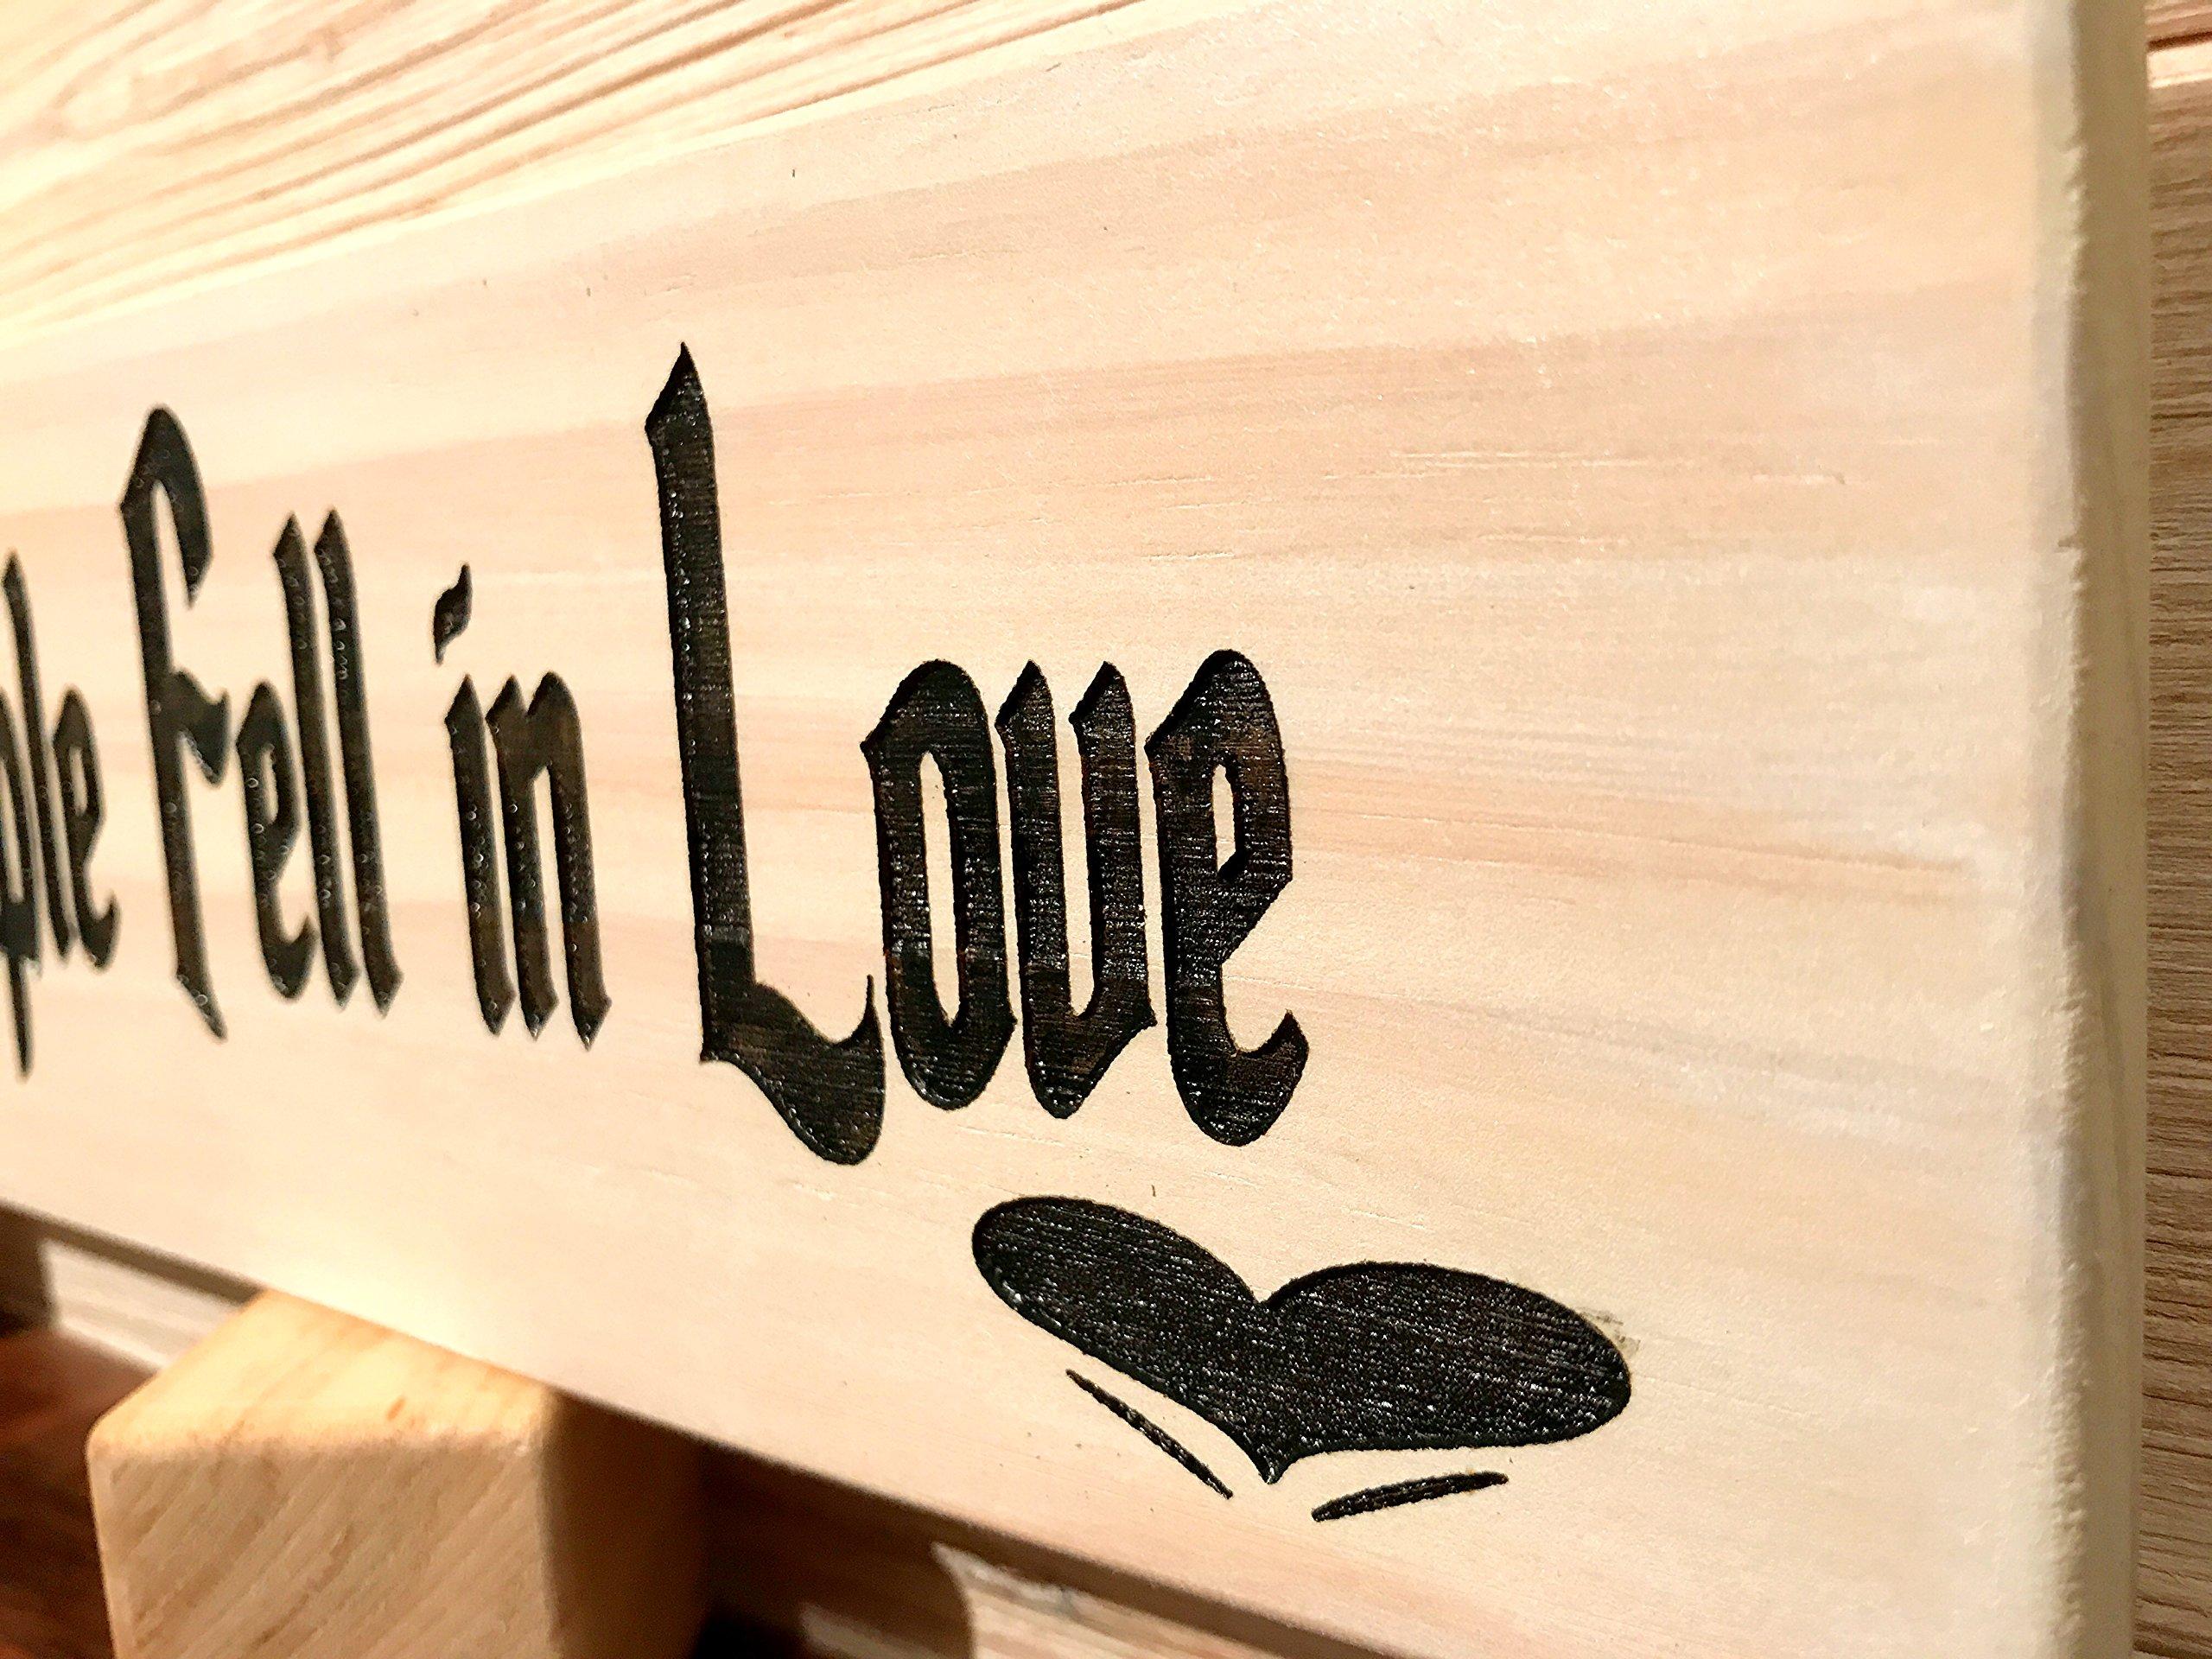 All Because Two People Fell In Love Wall Plaque Laser Engraved Personalized Custom Sign 163 by SignsByAllSeasons by All Seasons (Image #2)